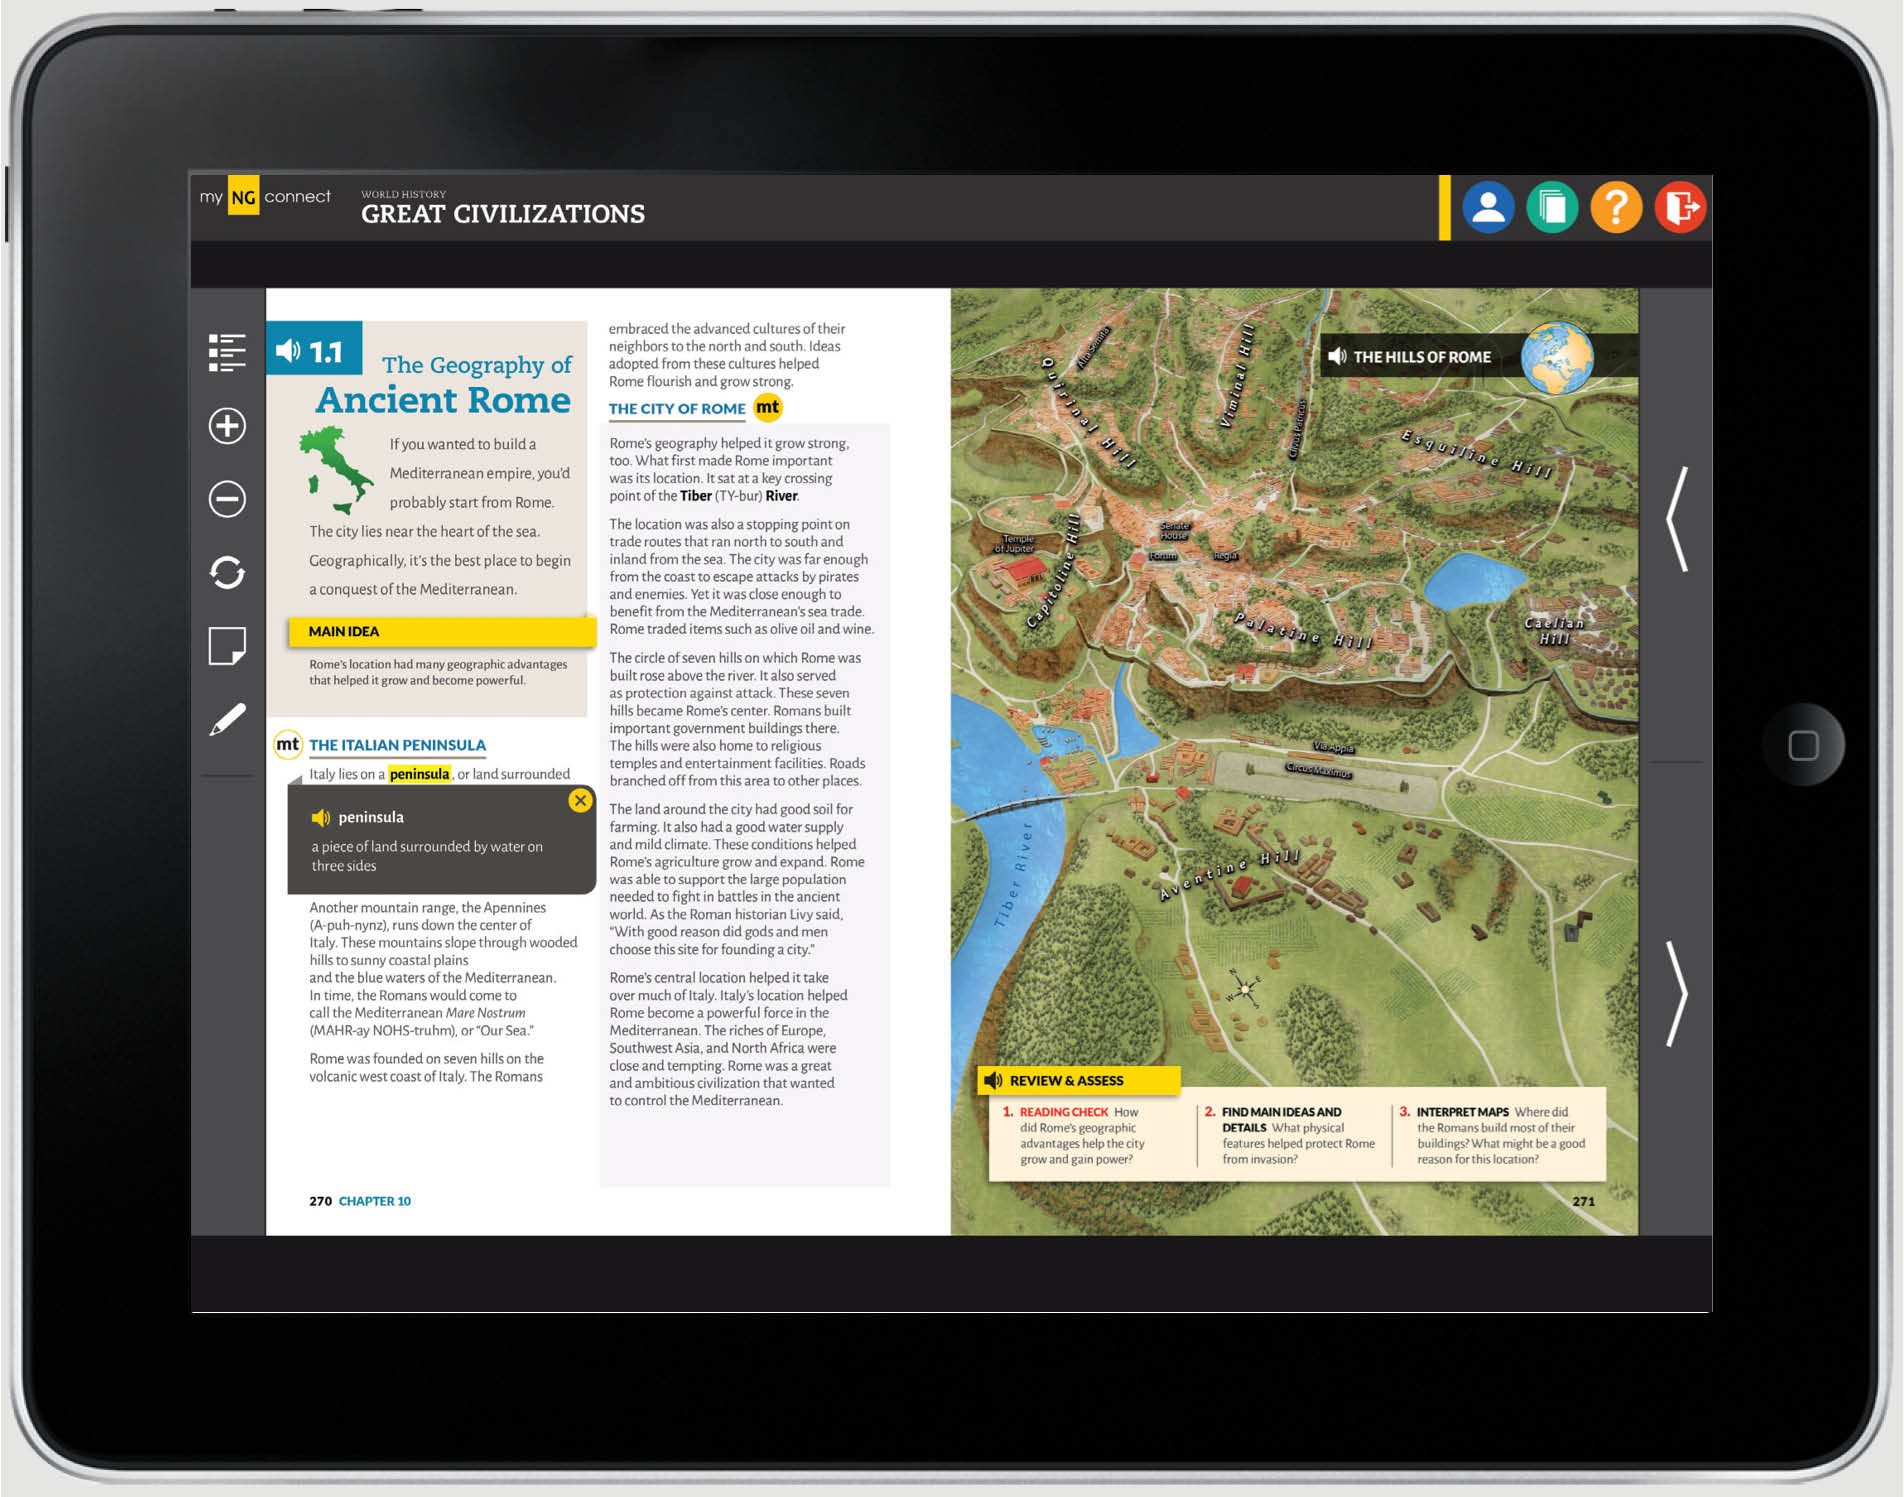 National geographic world history great civilizations ngl school myngconnect for students fandeluxe Choice Image